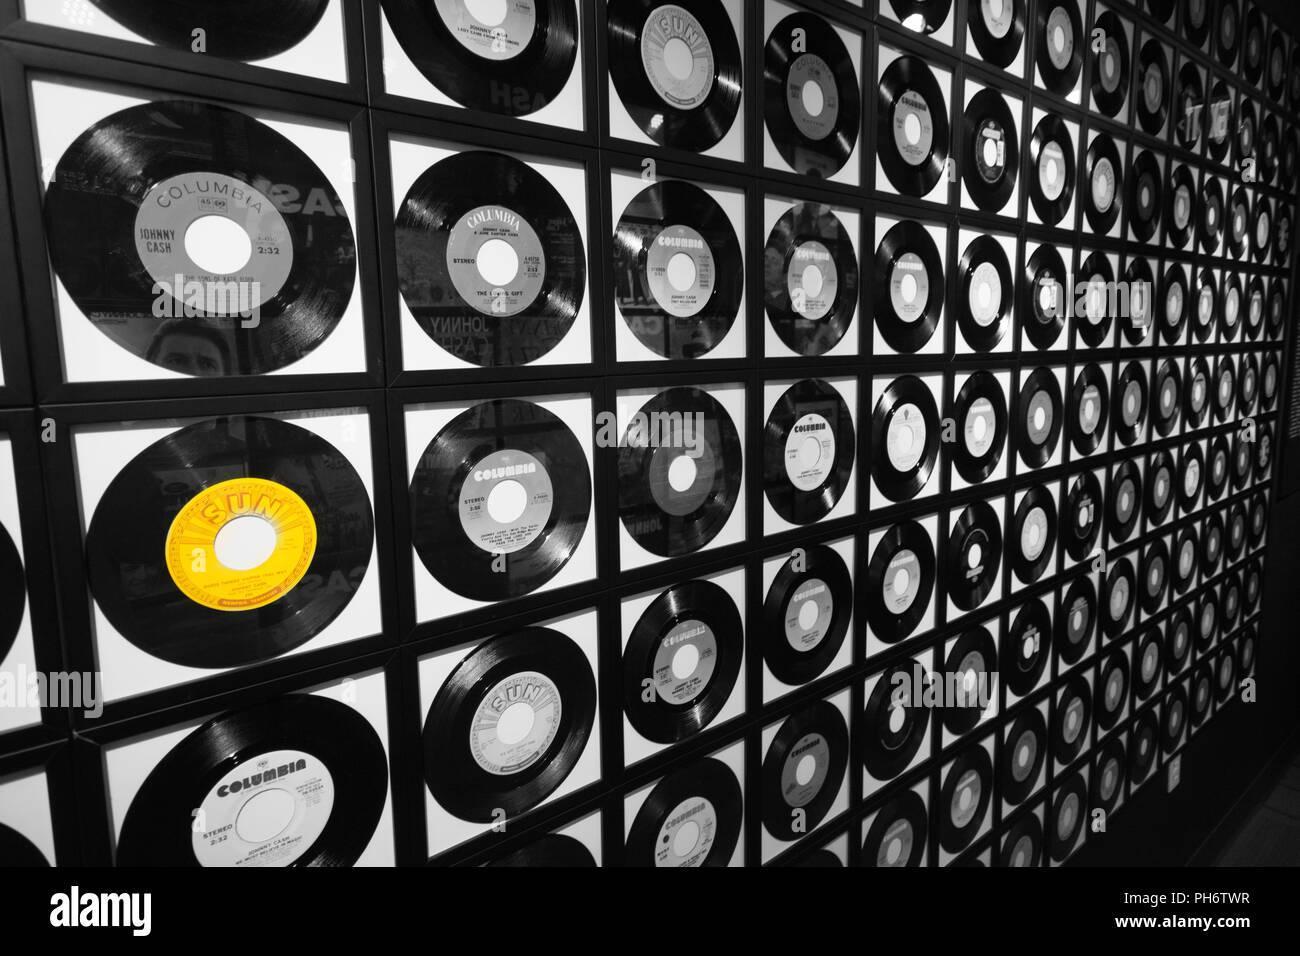 Vinyl Record Collection - Stock Image